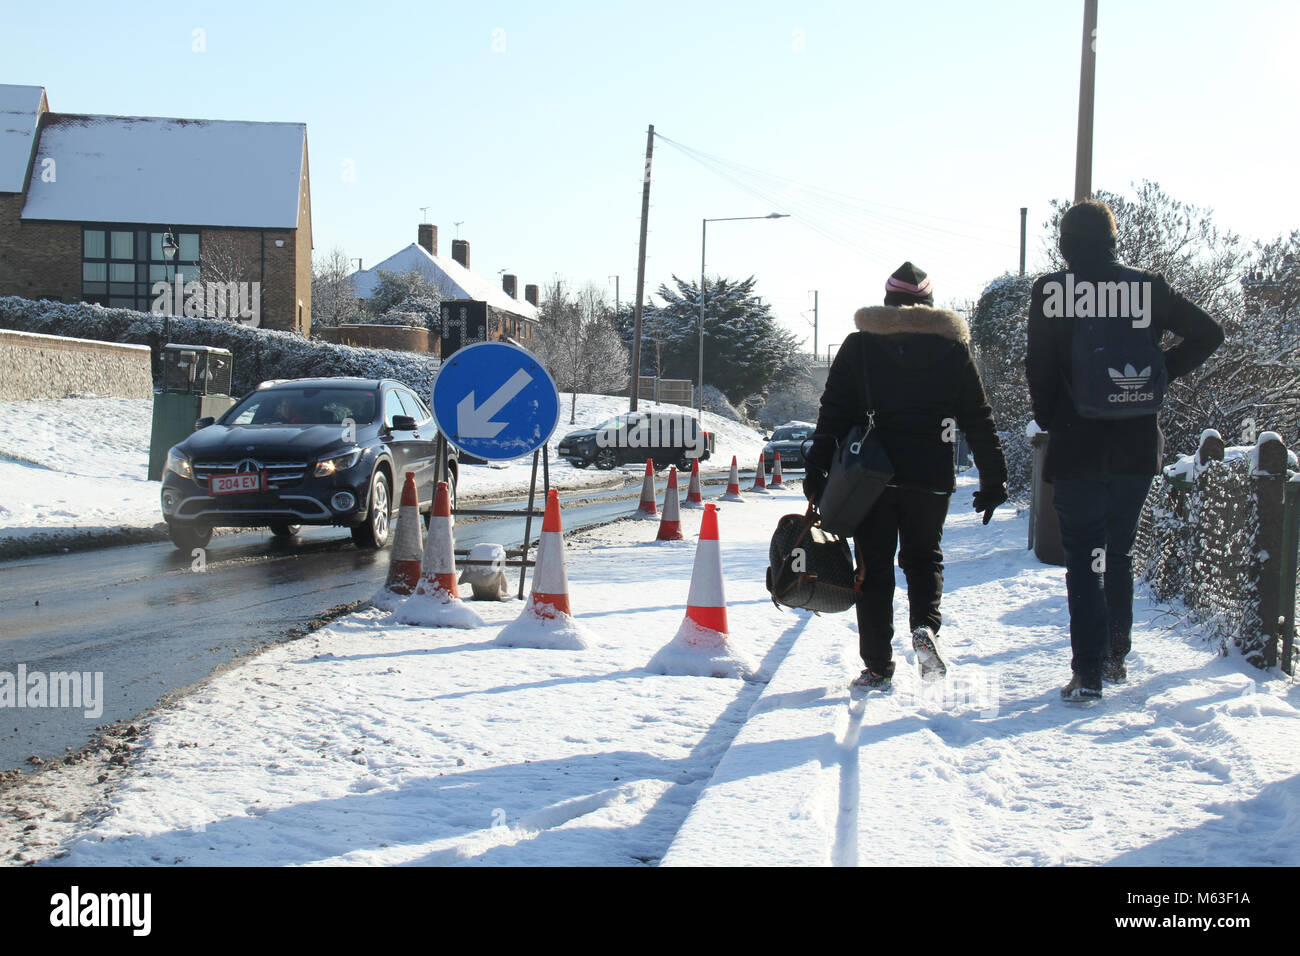 Purfleet, UK - February 28: Pedestrians walk by a snow-covered road obstruction on London Road in Purfleet on 28 - Stock Image